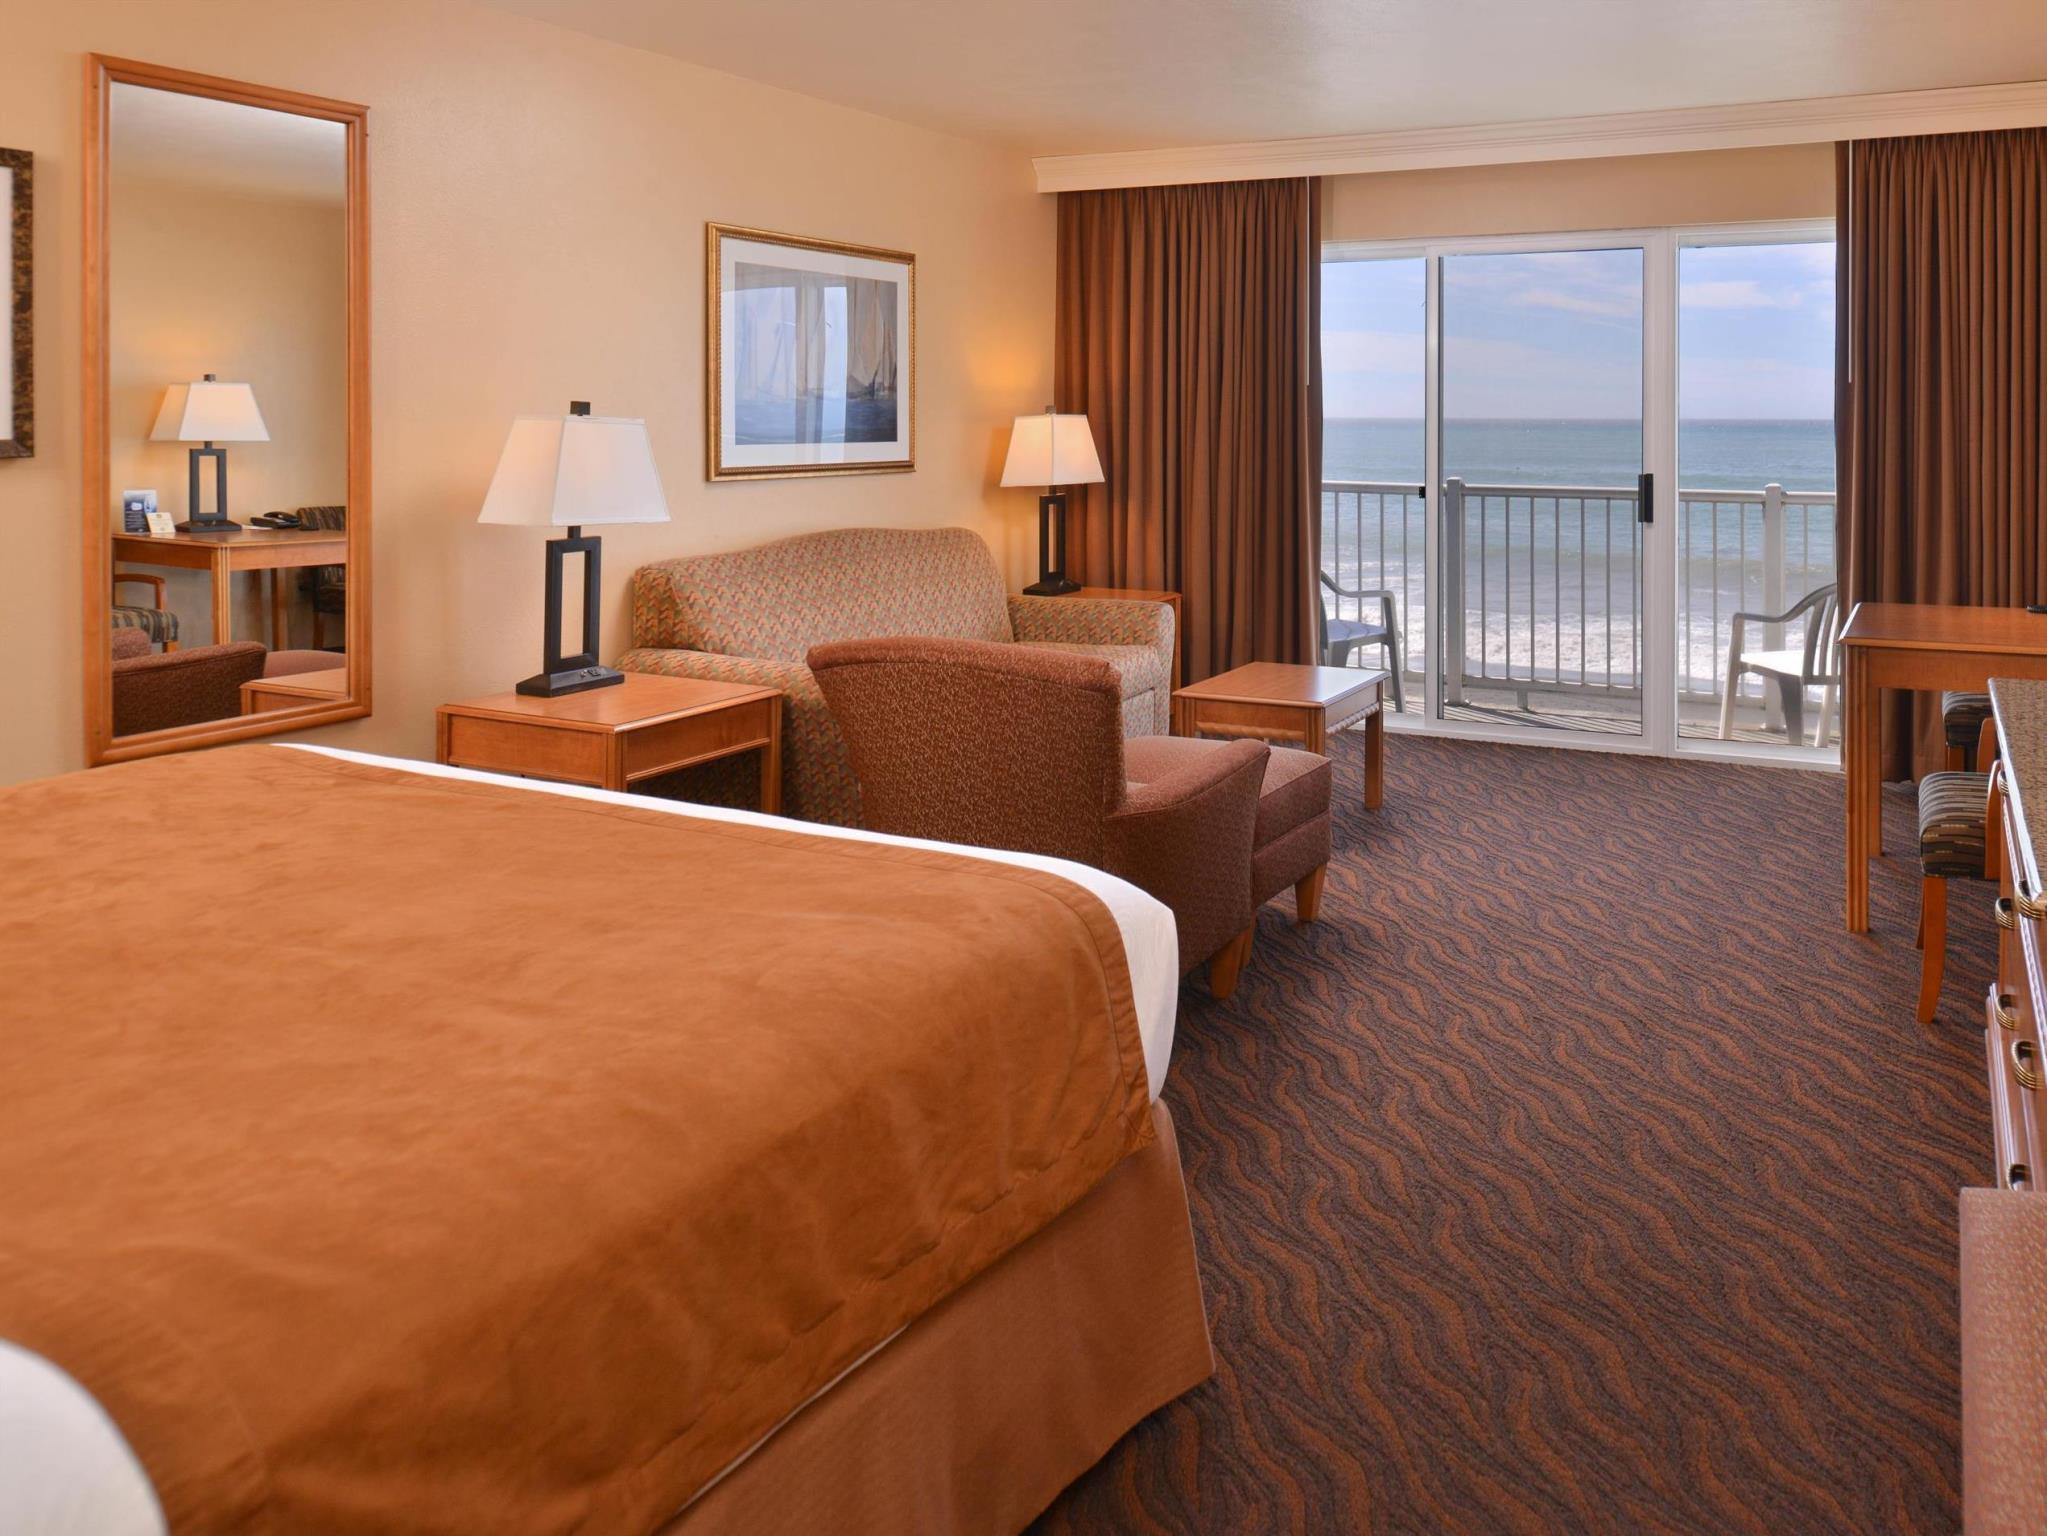 King Room with Ocean View - Non-Smoking